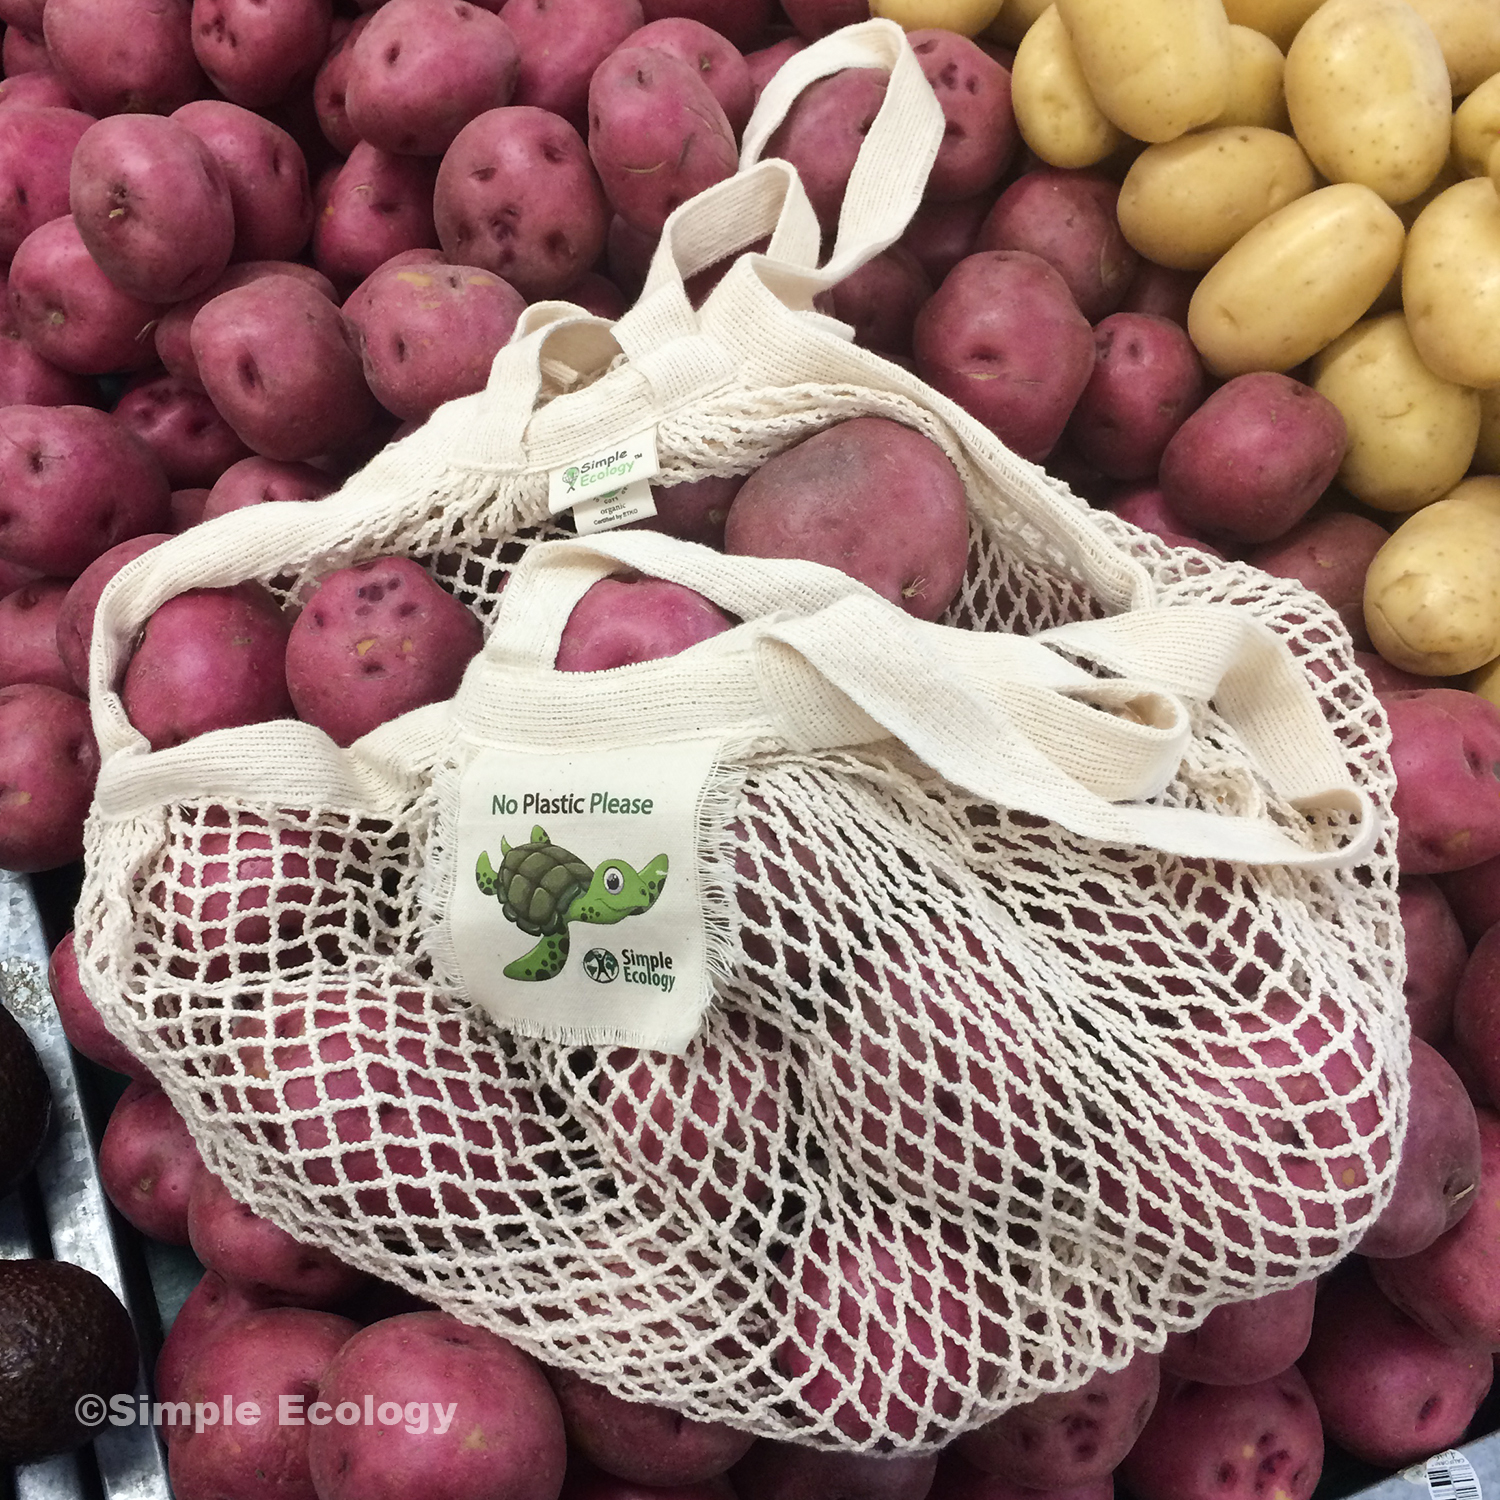 Turtle String Red Potatoes SW.jpg